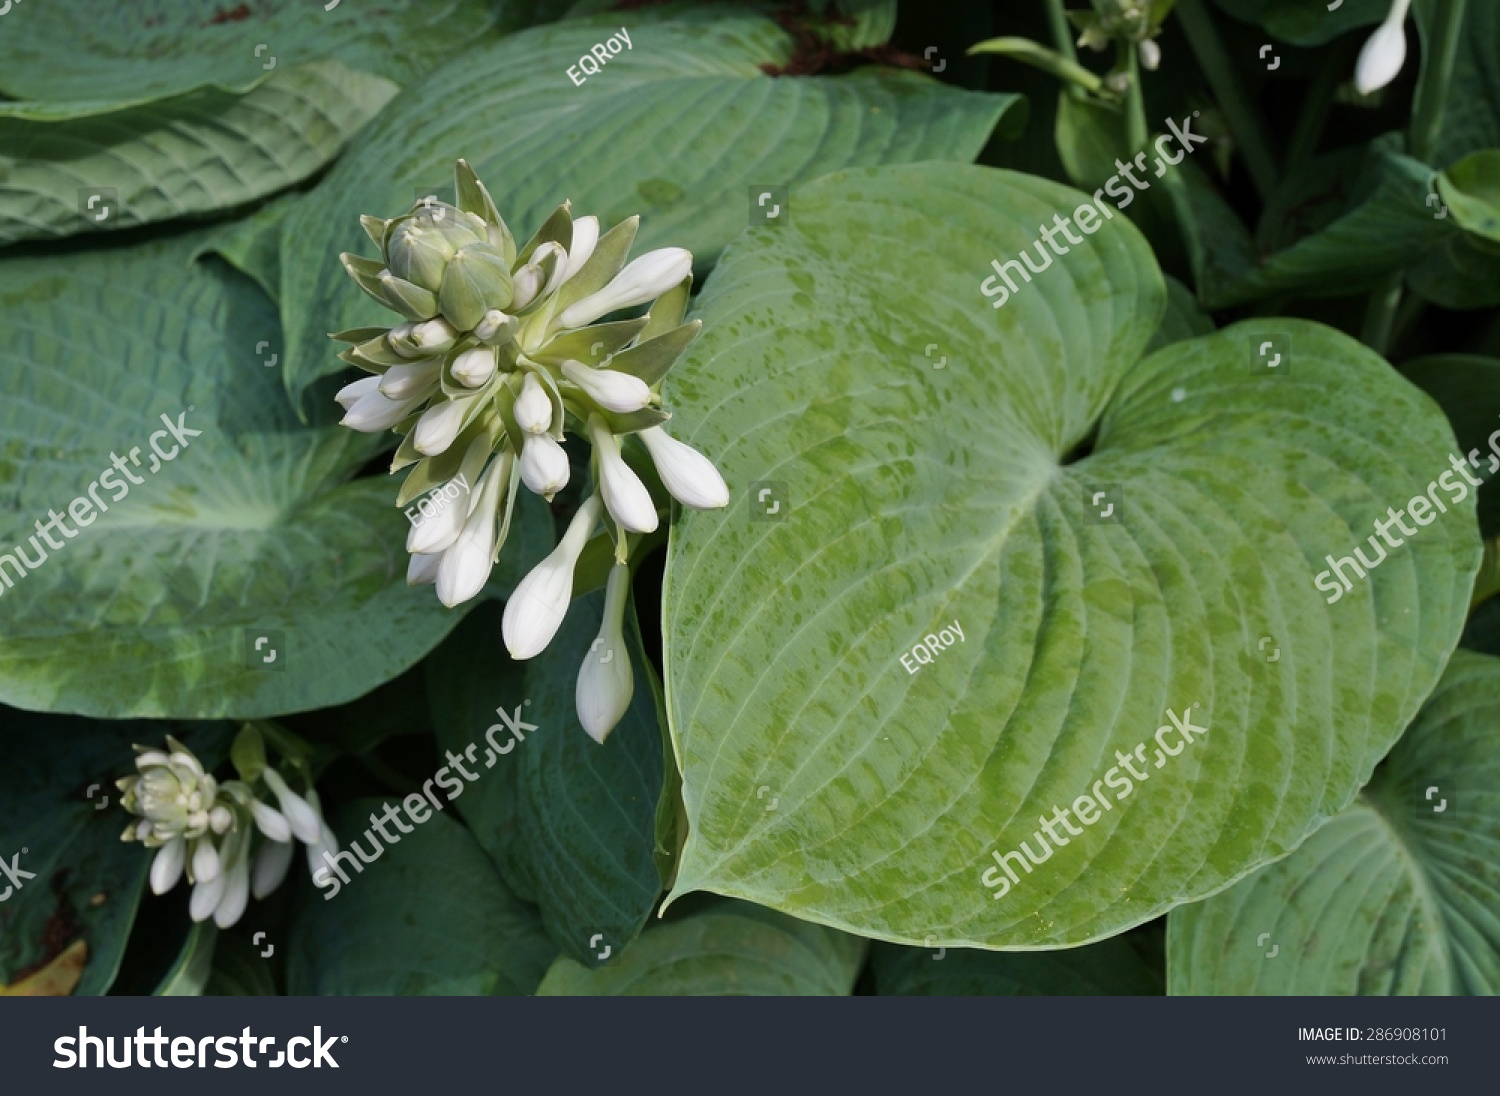 Magnificent hosta white flower gift images for wedding gown ideas amazing hosta white flower photos wedding and flowers ispiration mightylinksfo